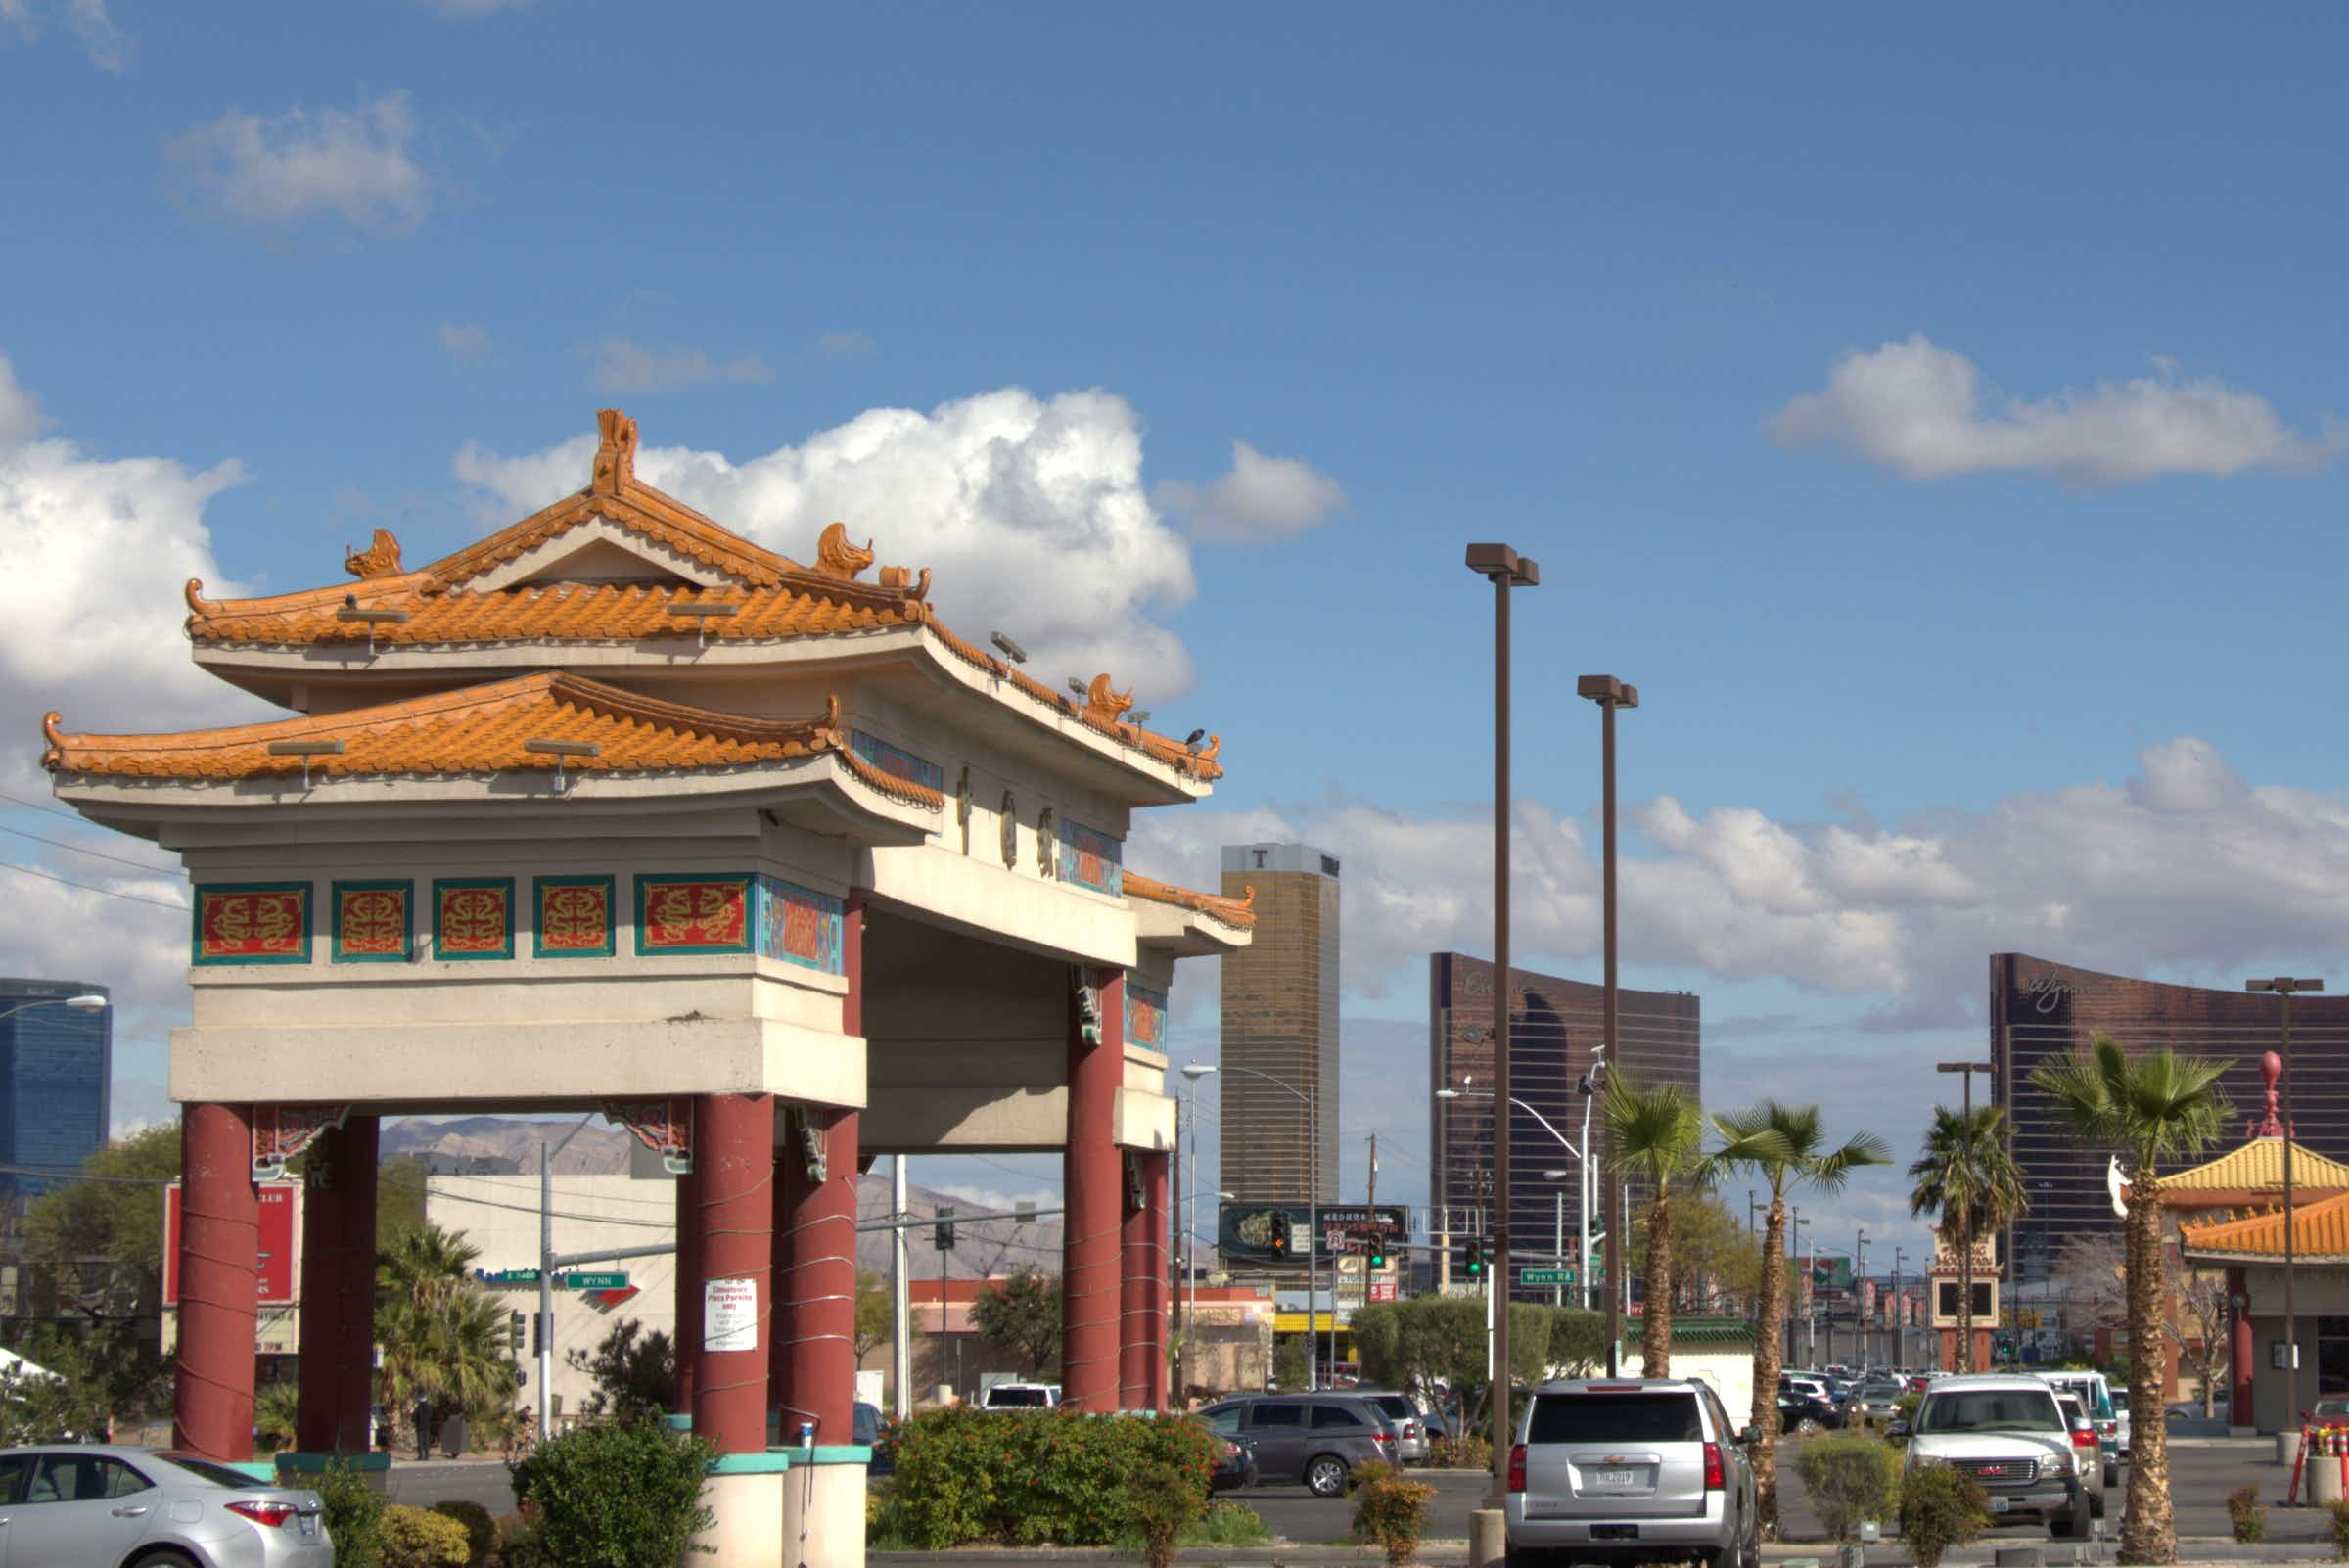 Chinatown Las Vegas is Sin City's best-kept secret